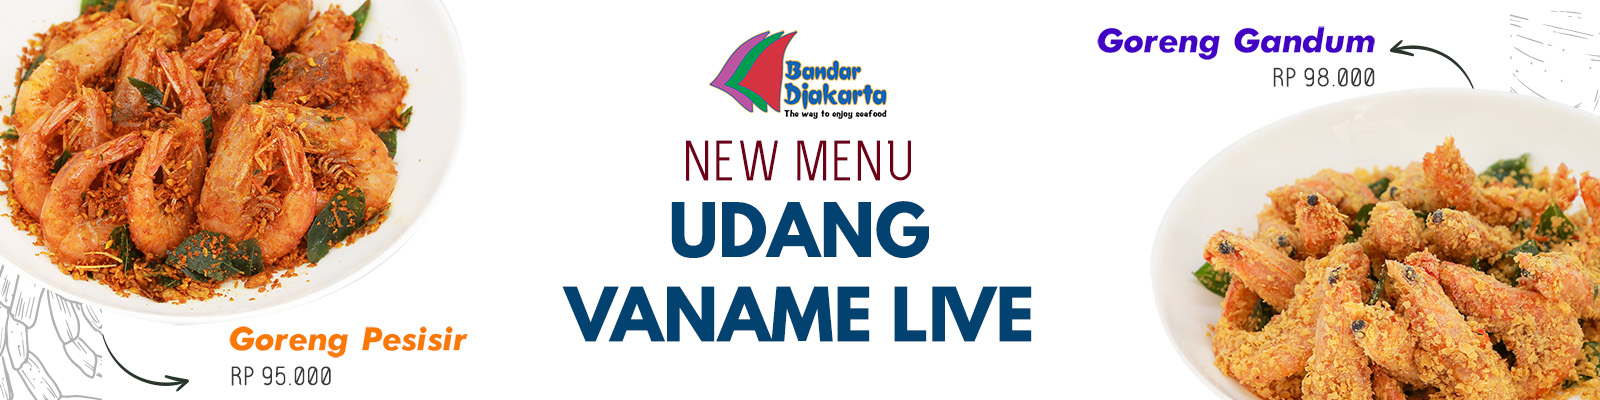 New Menu Shrimp Vaname Live !